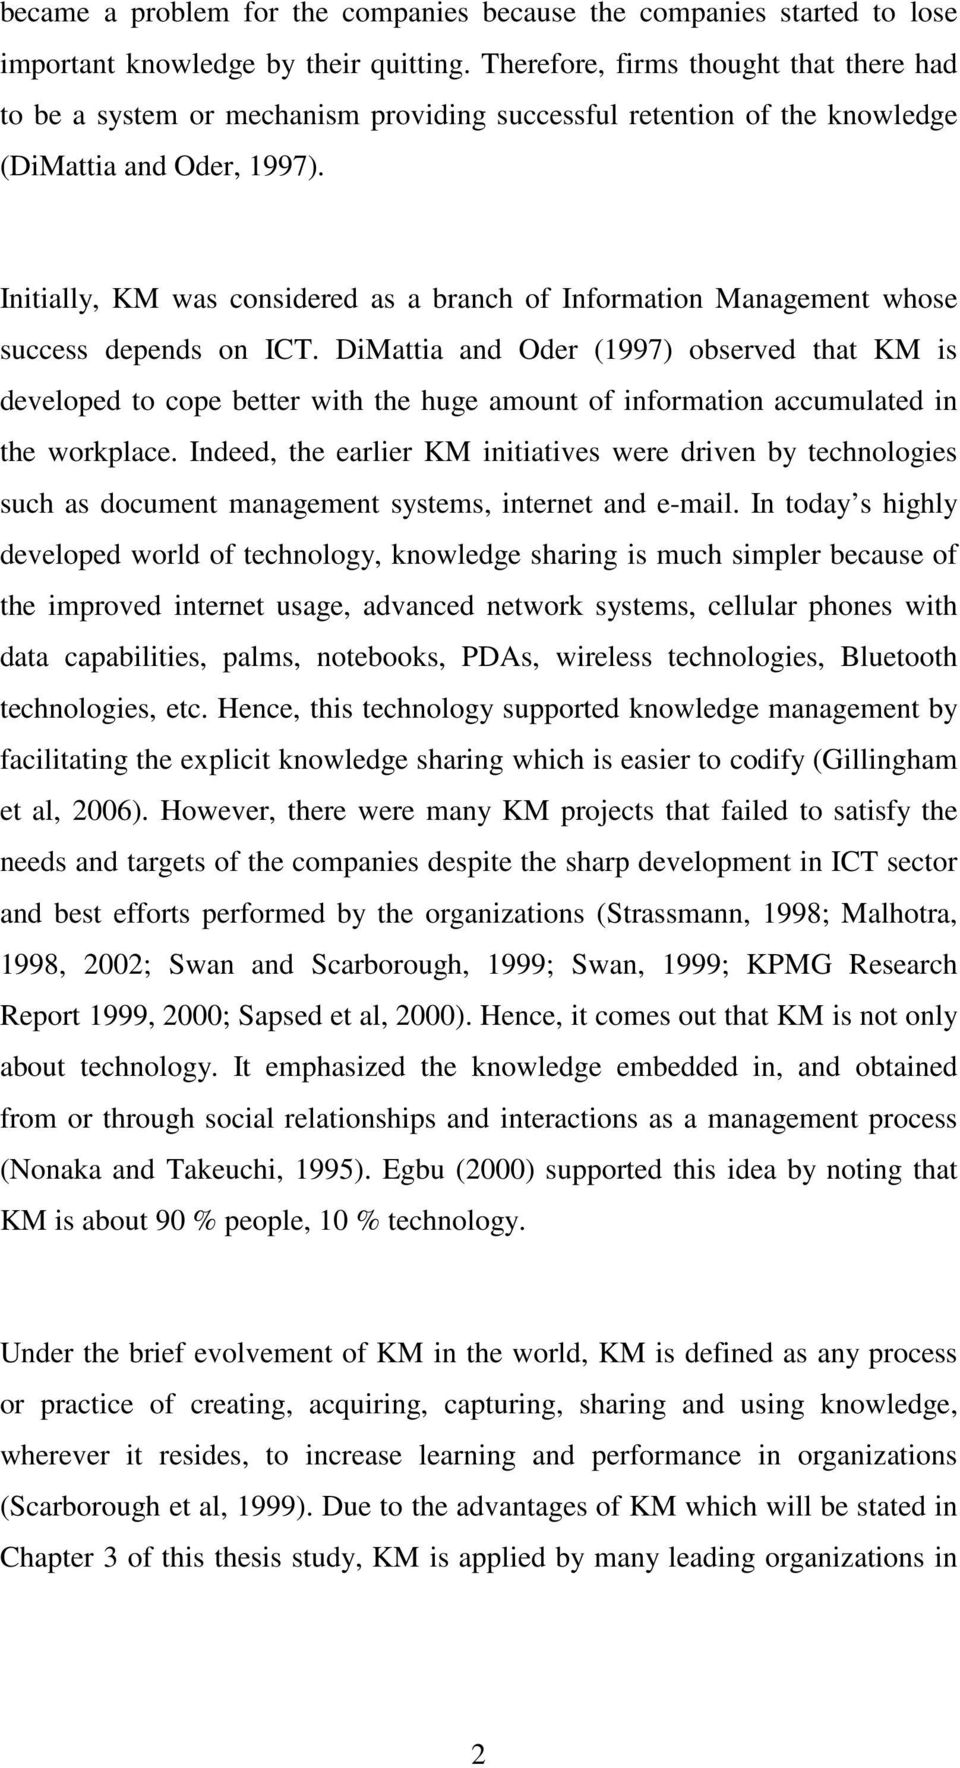 Initially, KM was considered as a branch of Information Management whose success depends on ICT.